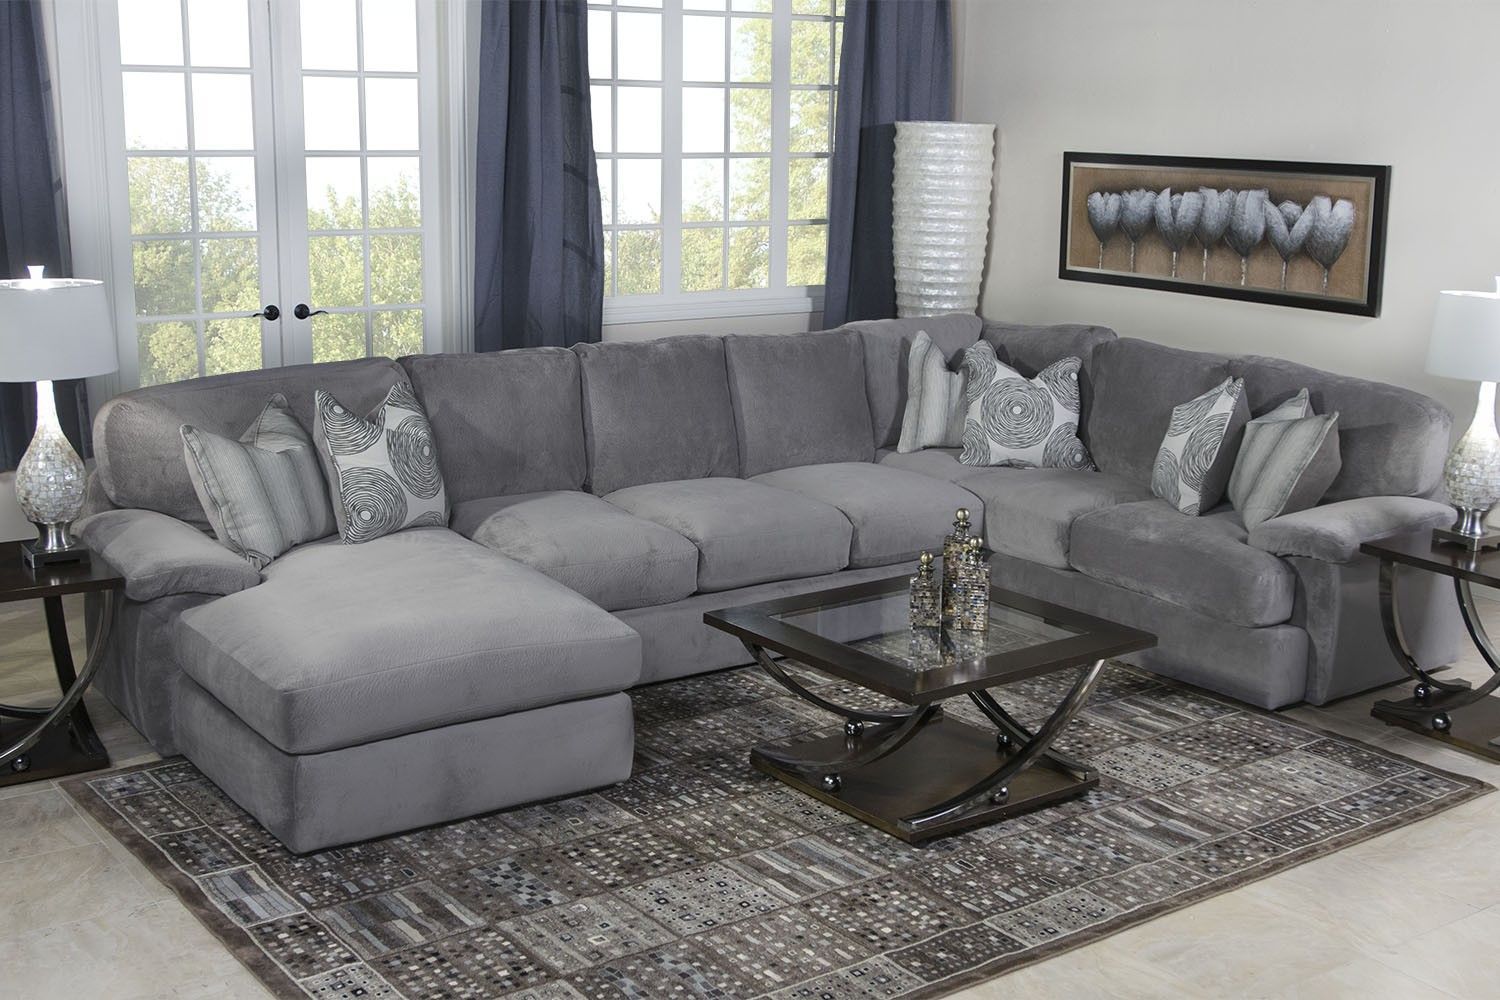 Key west sectional living room in gray living room mor for Living room furniture design